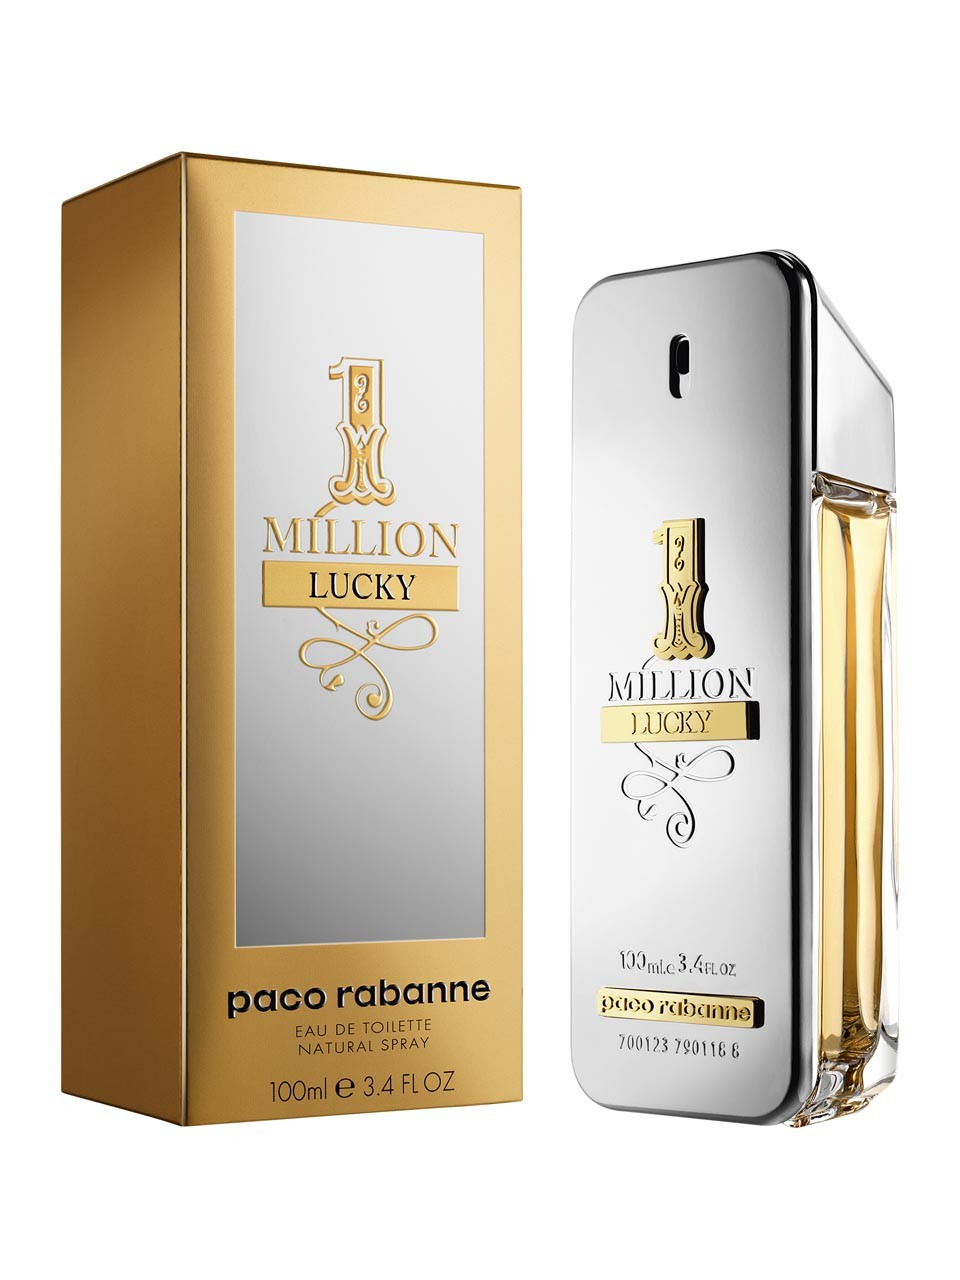 1 million lucky paco rabanne cologne un nouveau parfum. Black Bedroom Furniture Sets. Home Design Ideas